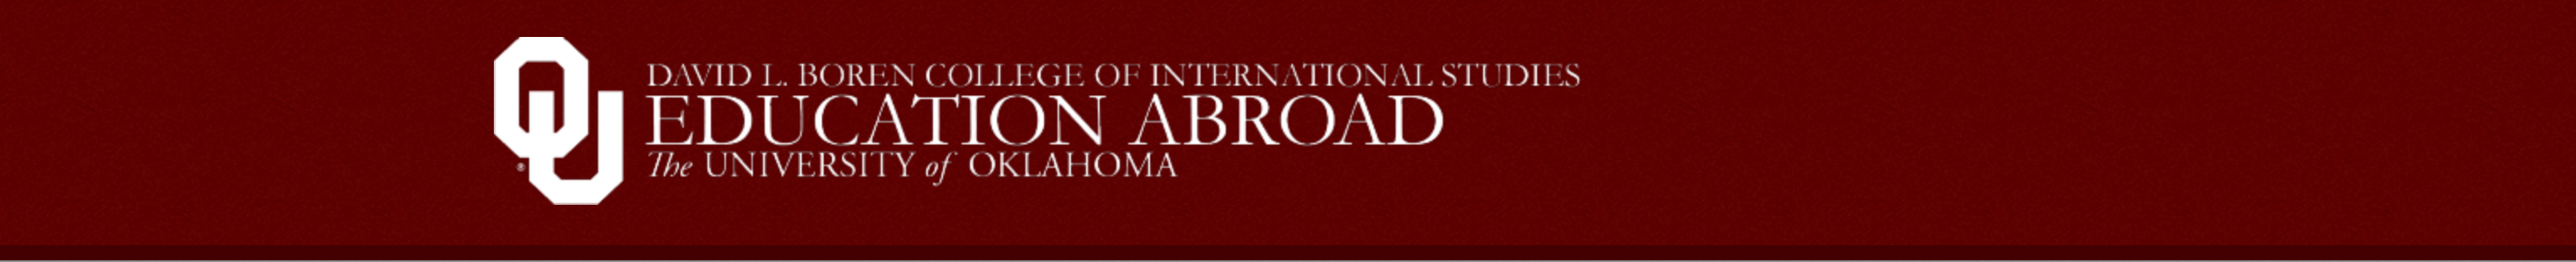 Education Abroad - The University of Oklahoma